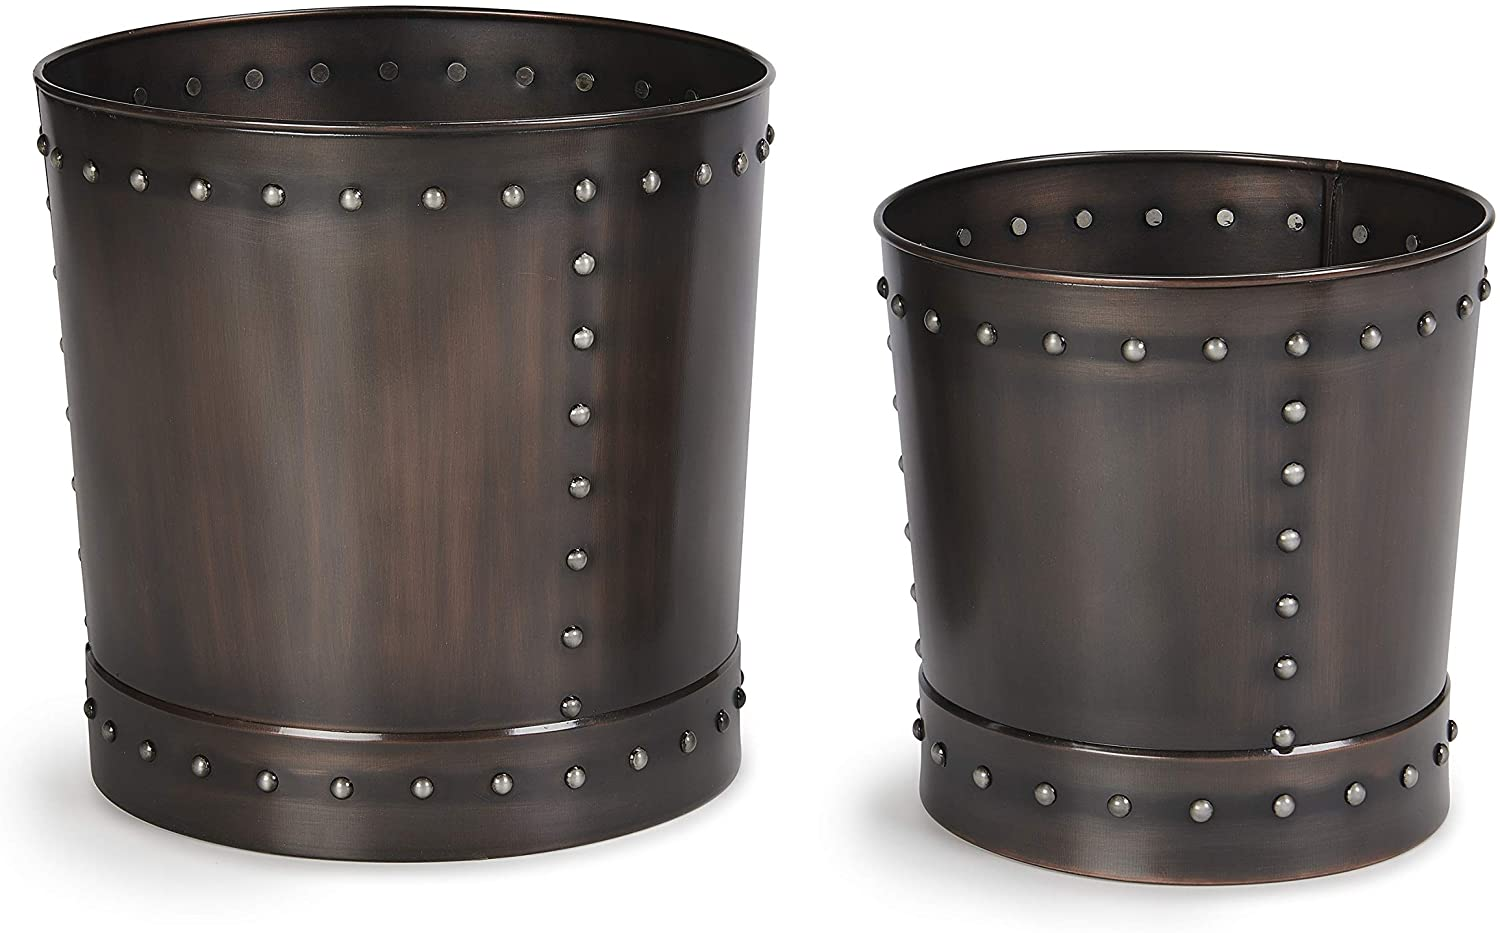 Good Directions P1215B Unique Large Riveted Bronze Set of 2 for Outdoor or Indoor Use, Garden, Deck, and Patio Planter